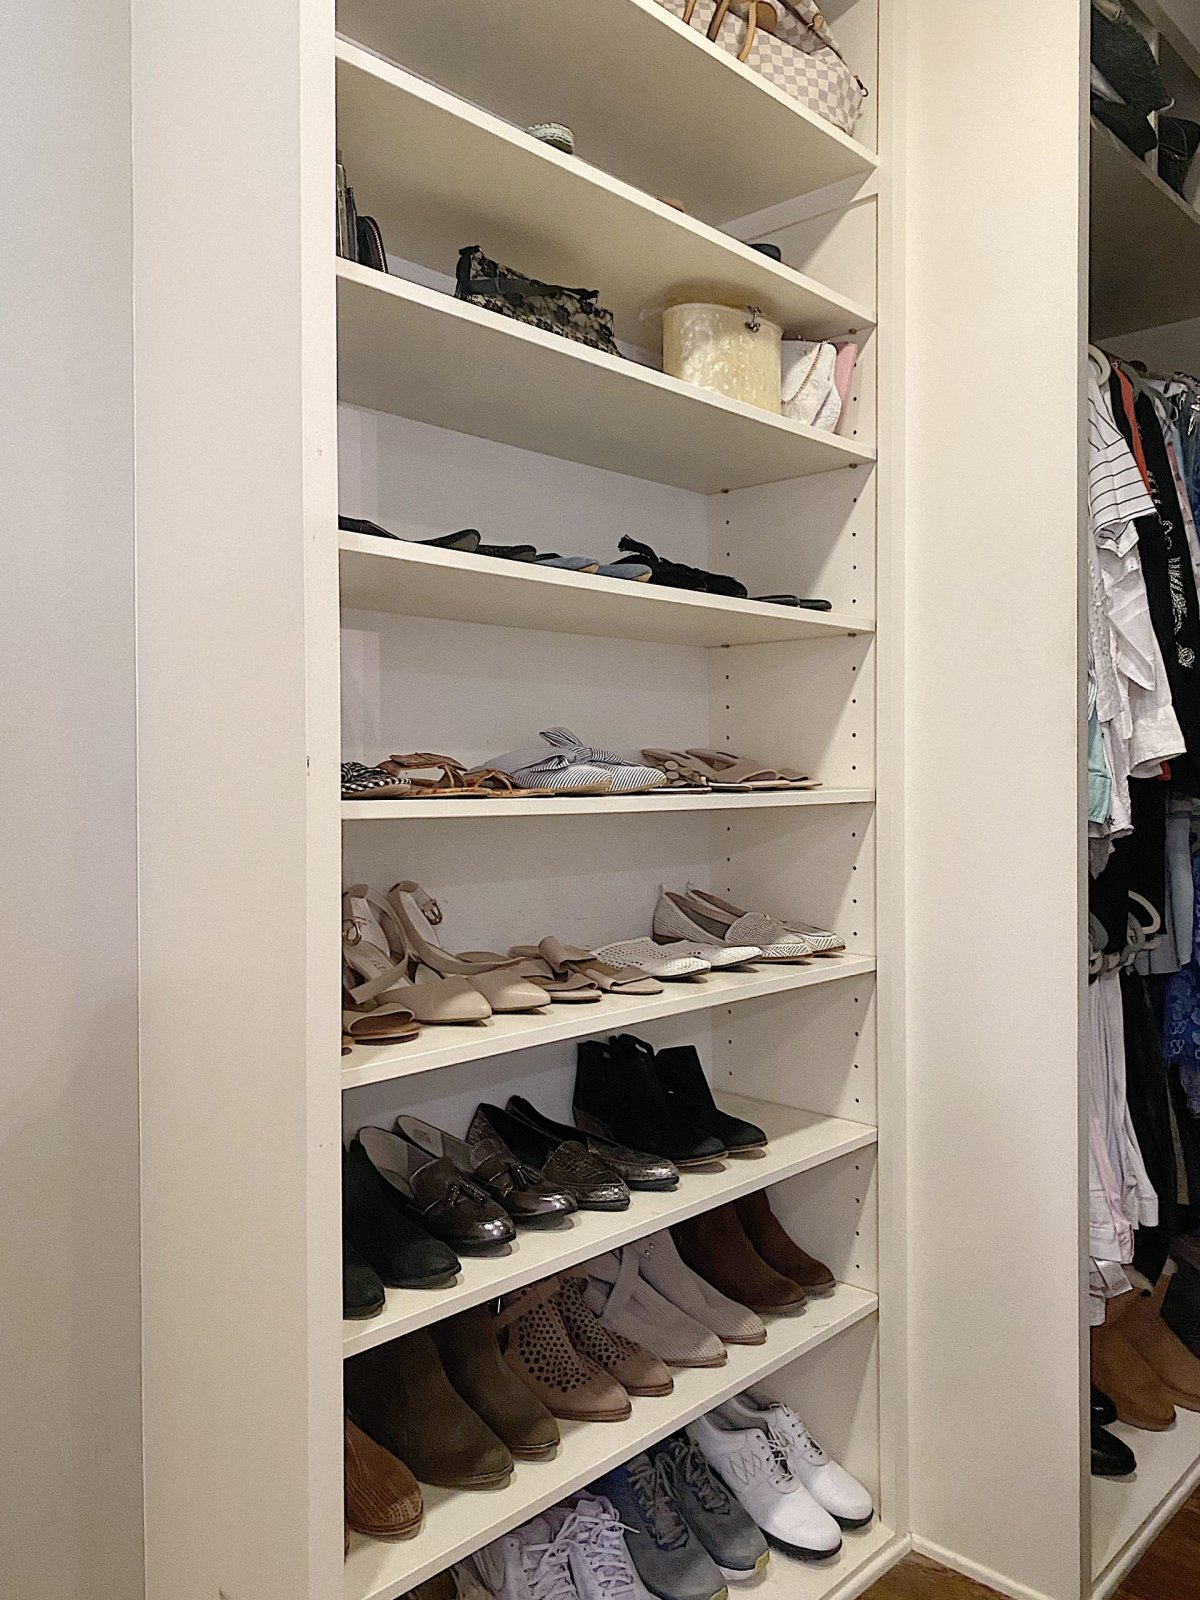 I finally found an easy project! Today I am sharing how to organize a bedroom closet. This was simple and very easy to do.